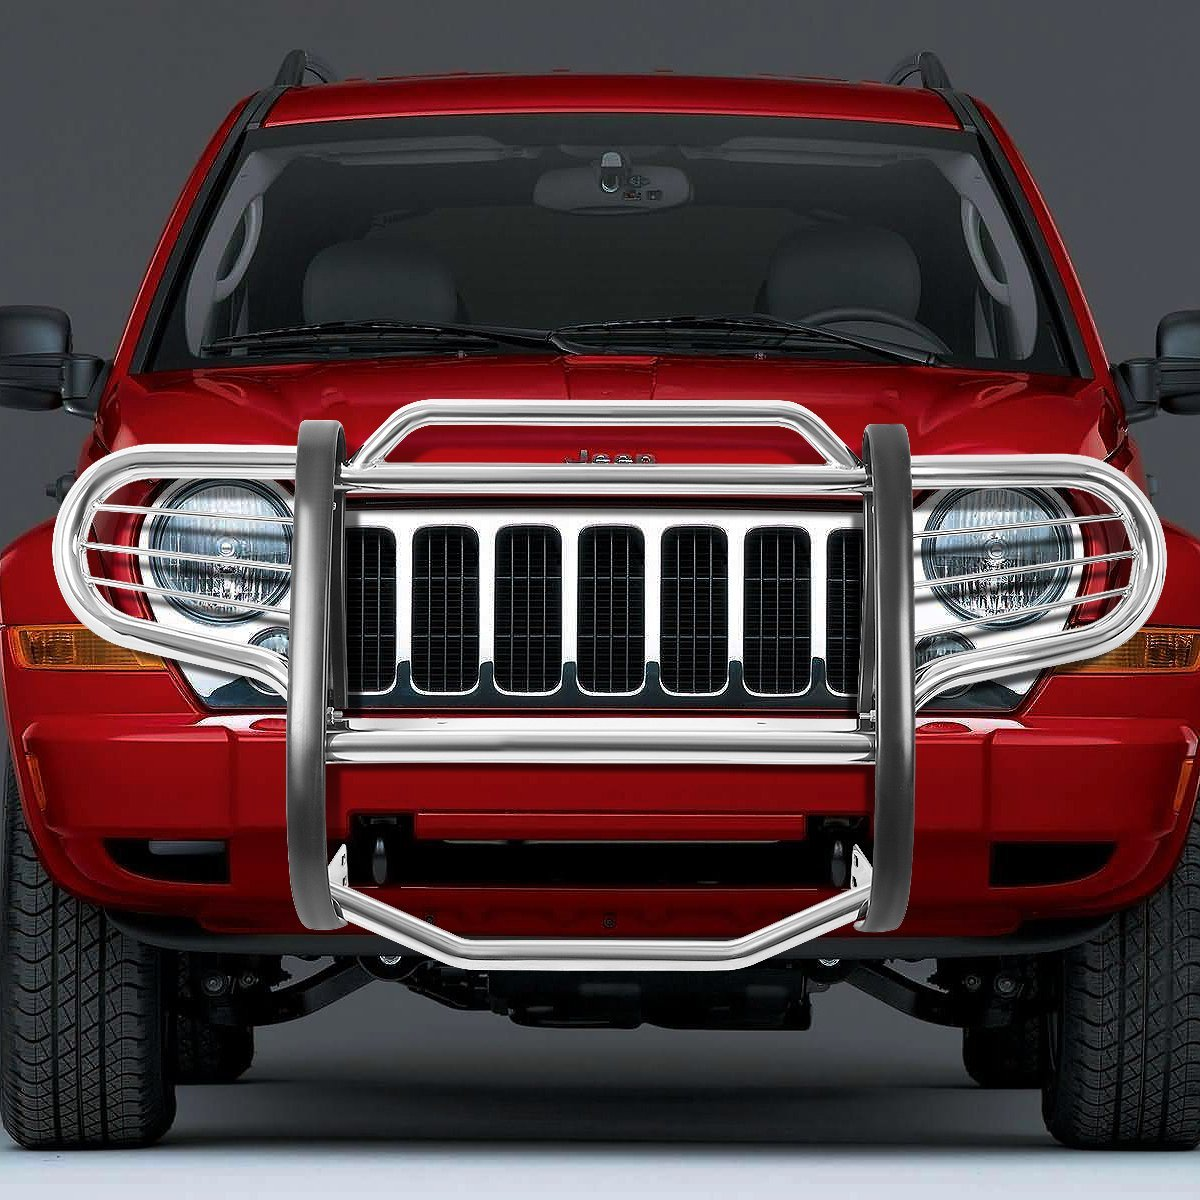 Jeep Grill Guards And Bumpers : Jeep liberty kj front bumper protector brush grille